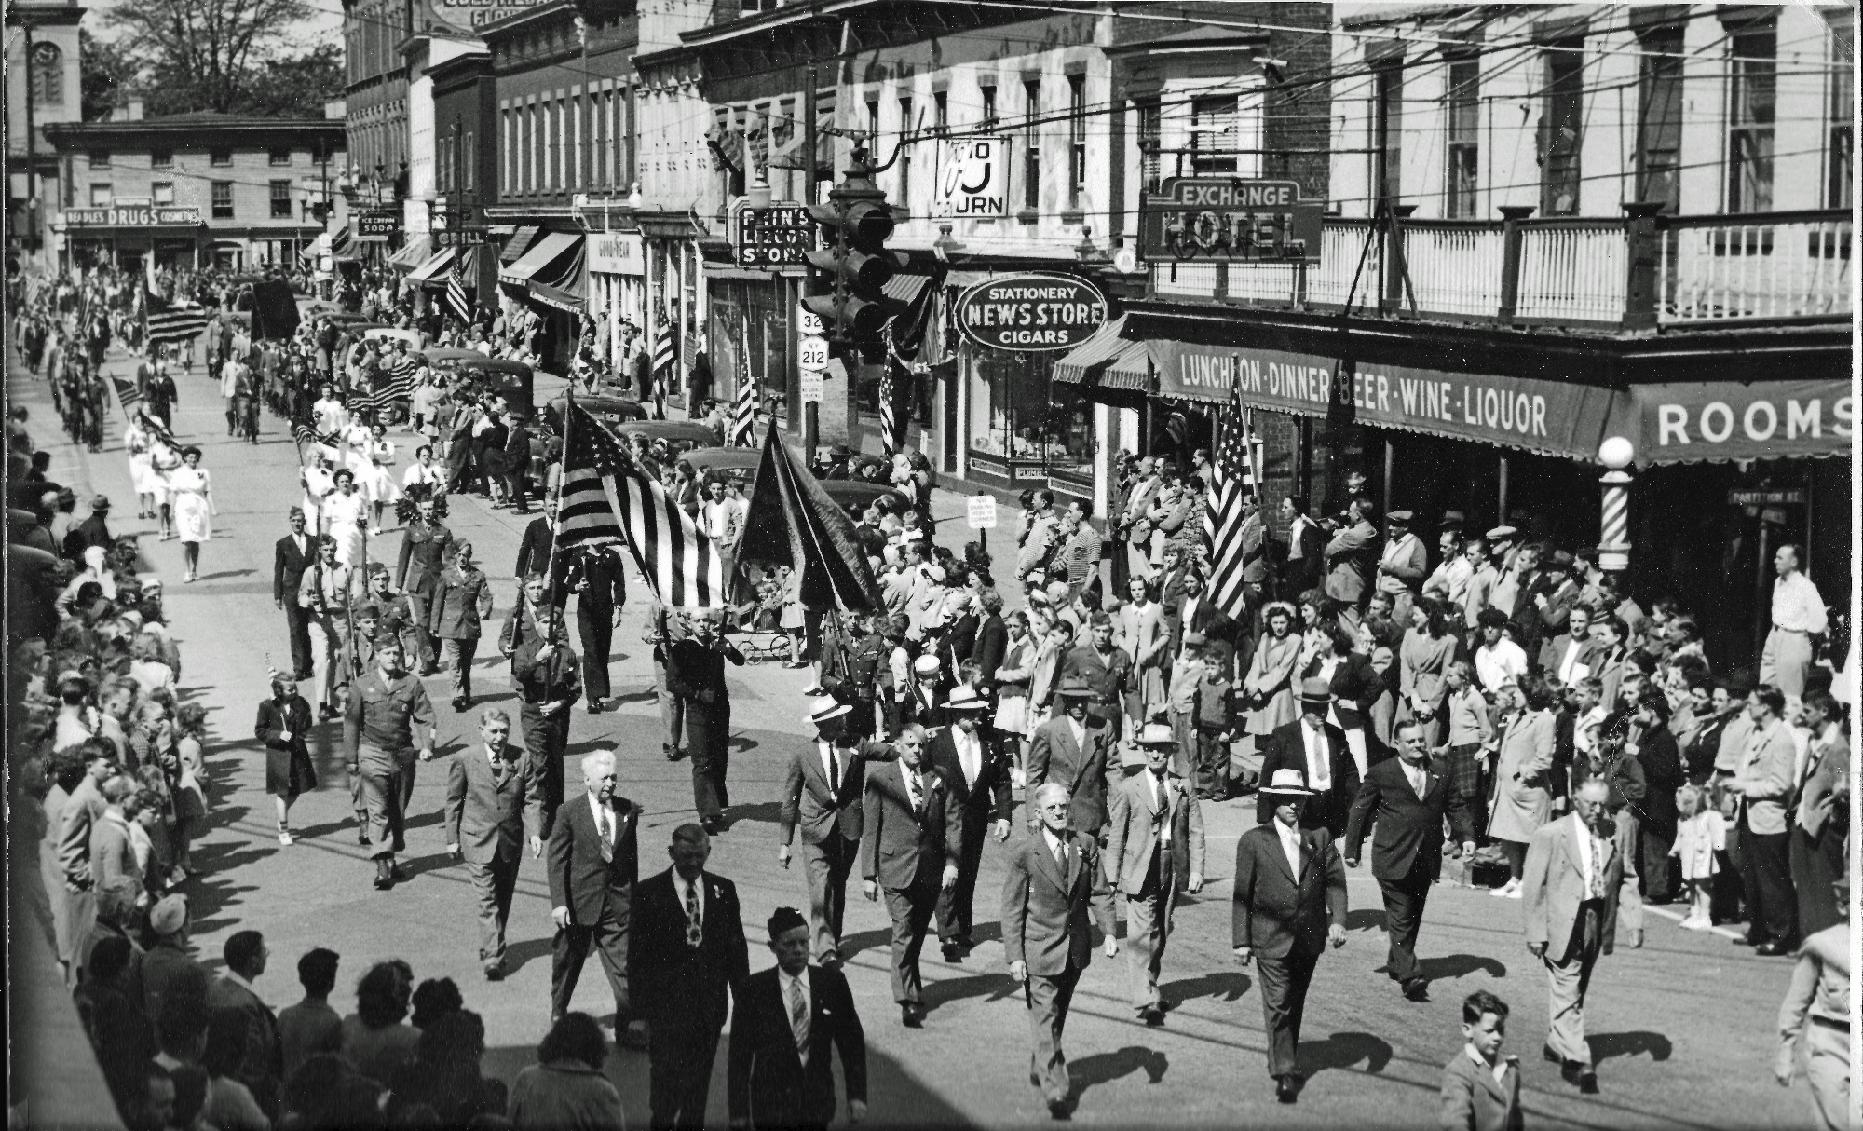 VFW Post 5034 in a 1947 parade in Saugerties, NY